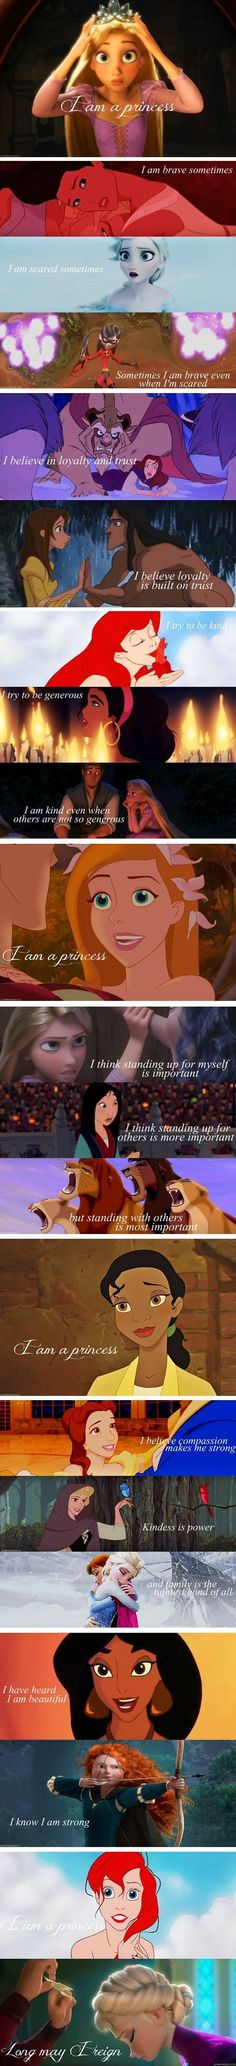 The only thing I hate is that Violet is in this when she's not a princess and she's not even Disney, she's Pixar. Disney Magic, Disney Pixar, Walt Disney, Disney Amor, Disney Memes, Disney Quotes, Disney And Dreamworks, Disney Love, Disney Characters